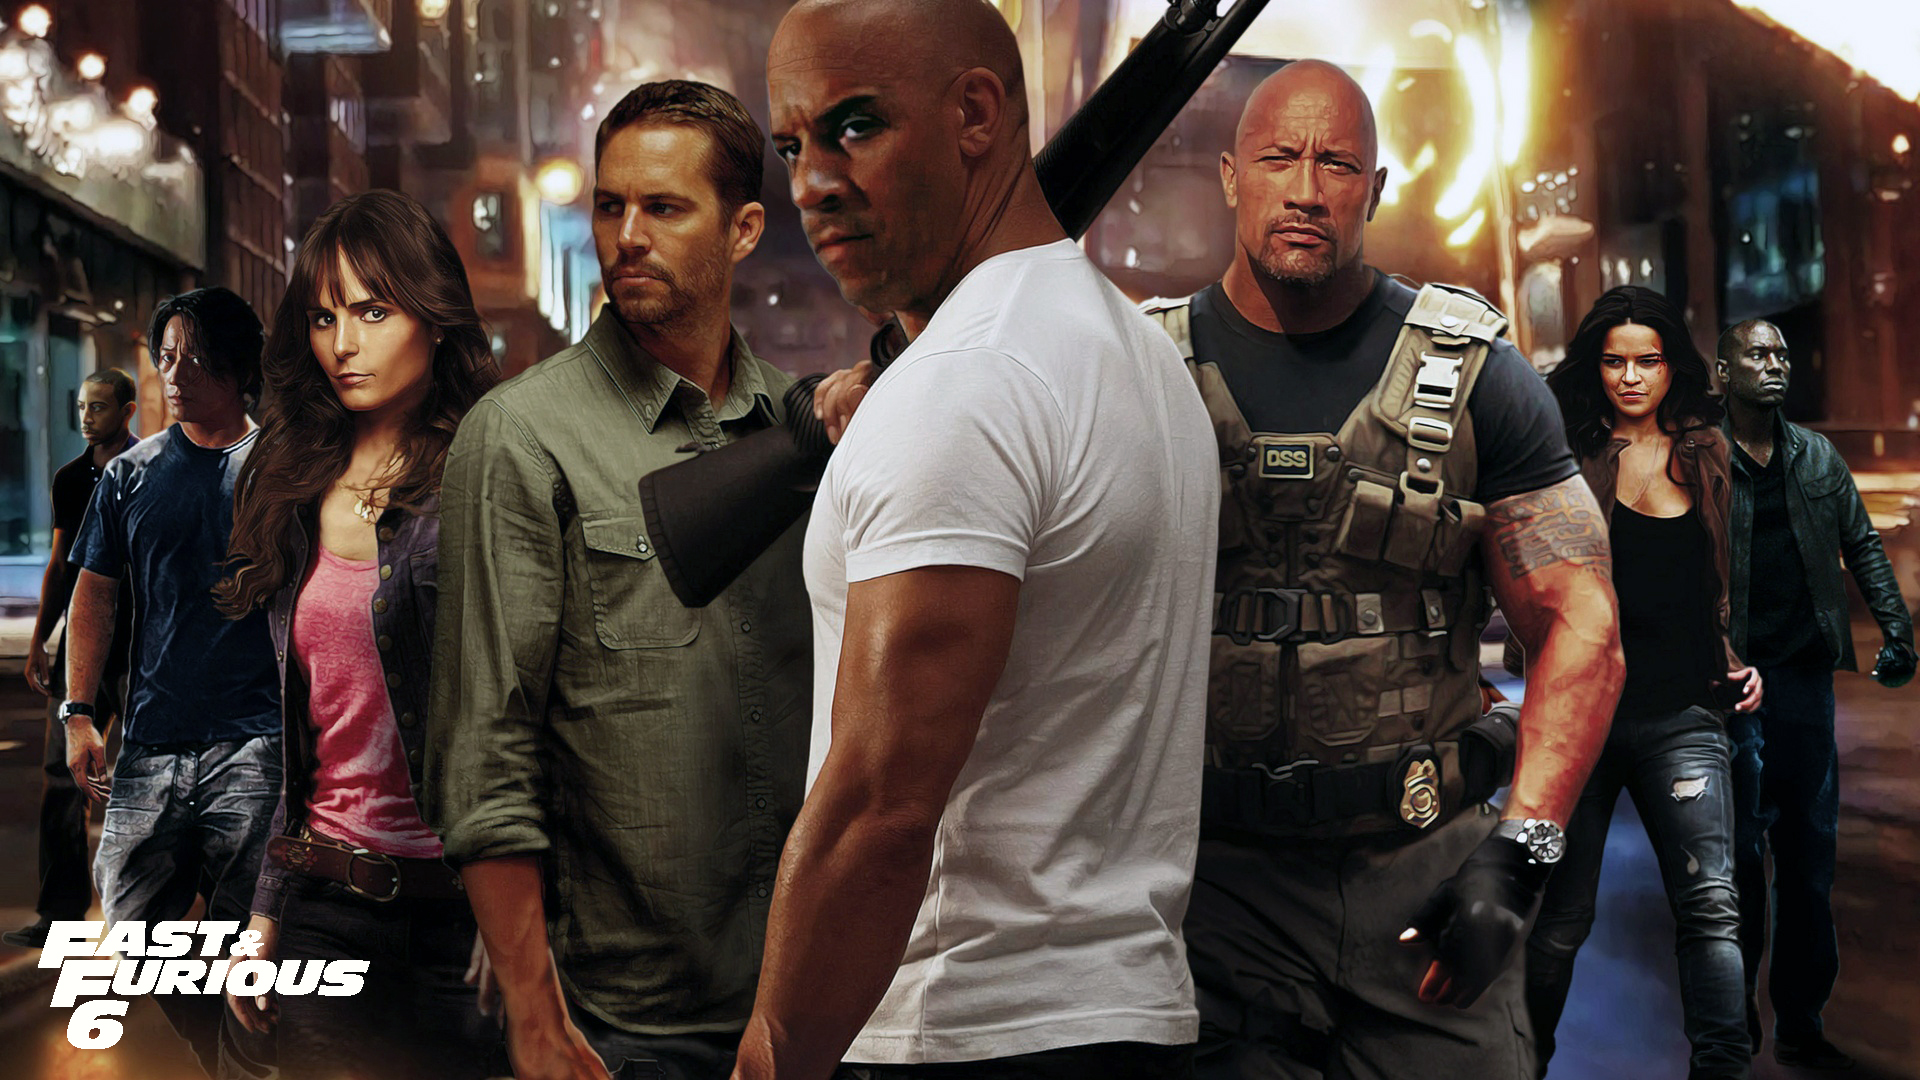 Dwayne Johnson Fast And Furious Image 9